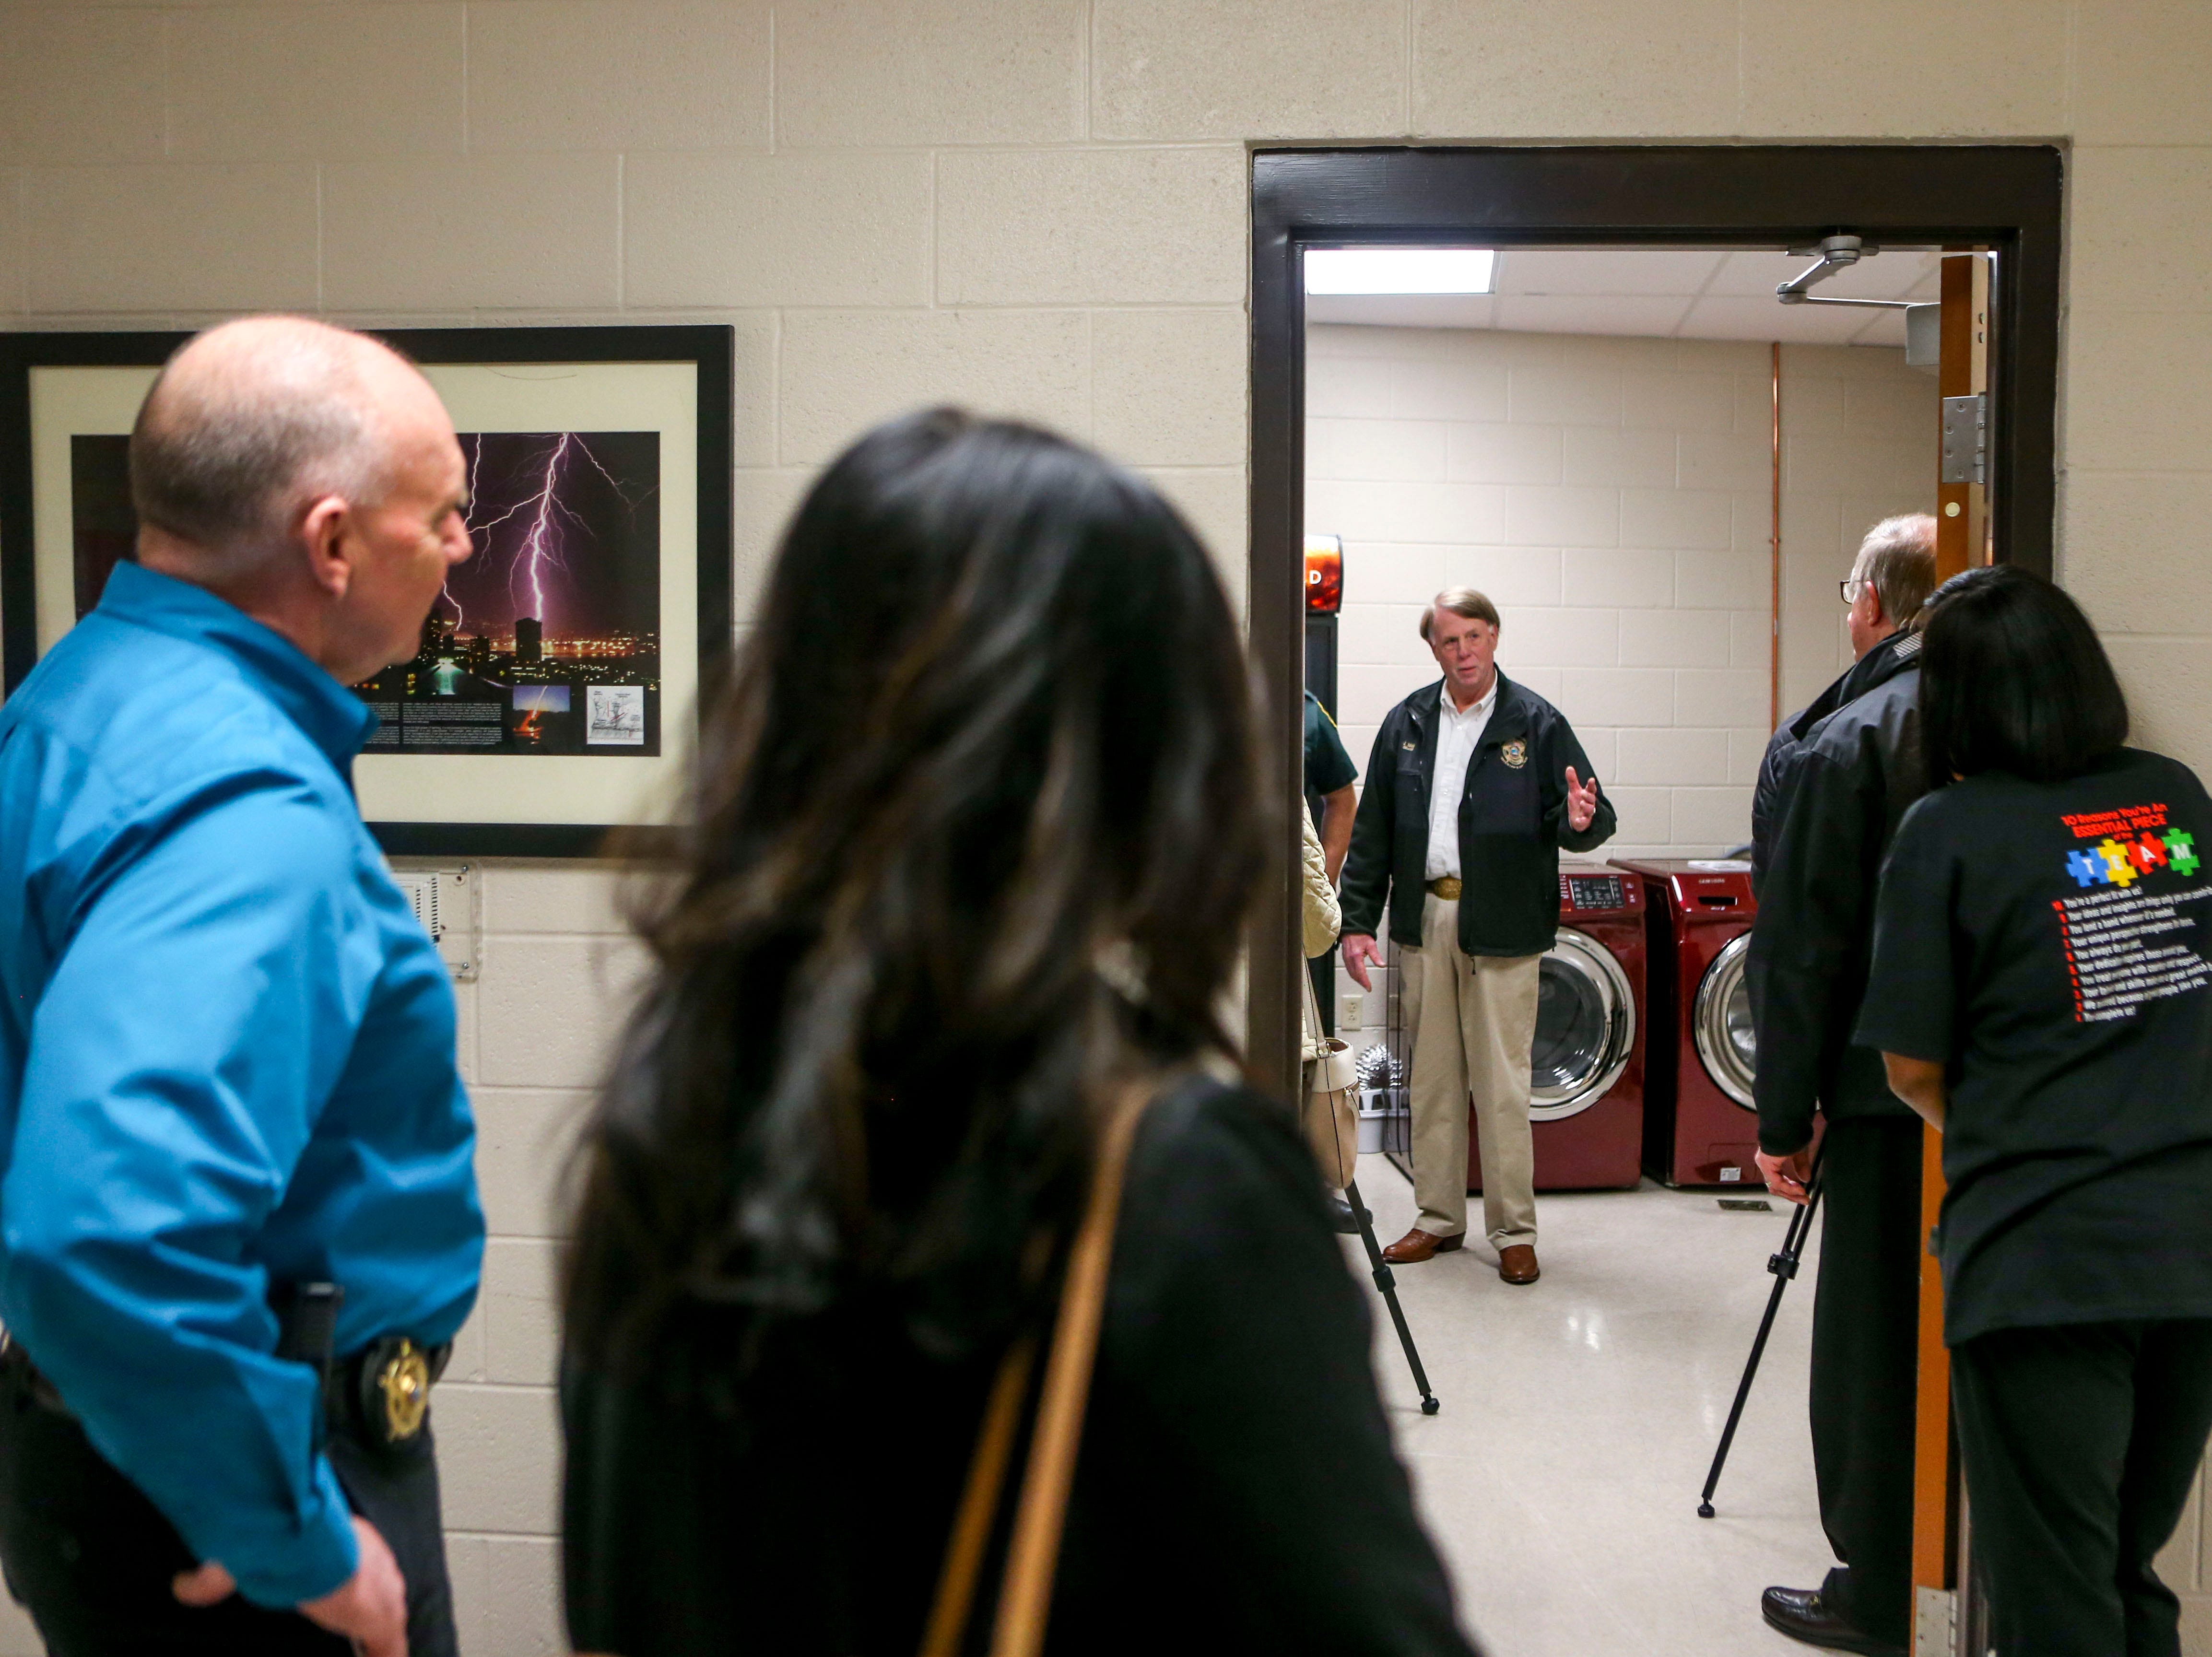 Spectators listen as Sheriff John Mehr speaks in front of a newly donated washer and dryer set with deputy William Haley at Jackson Careers and Technology Middle School  in Jackson, Tenn., on Friday, Jan. 18, 2019.